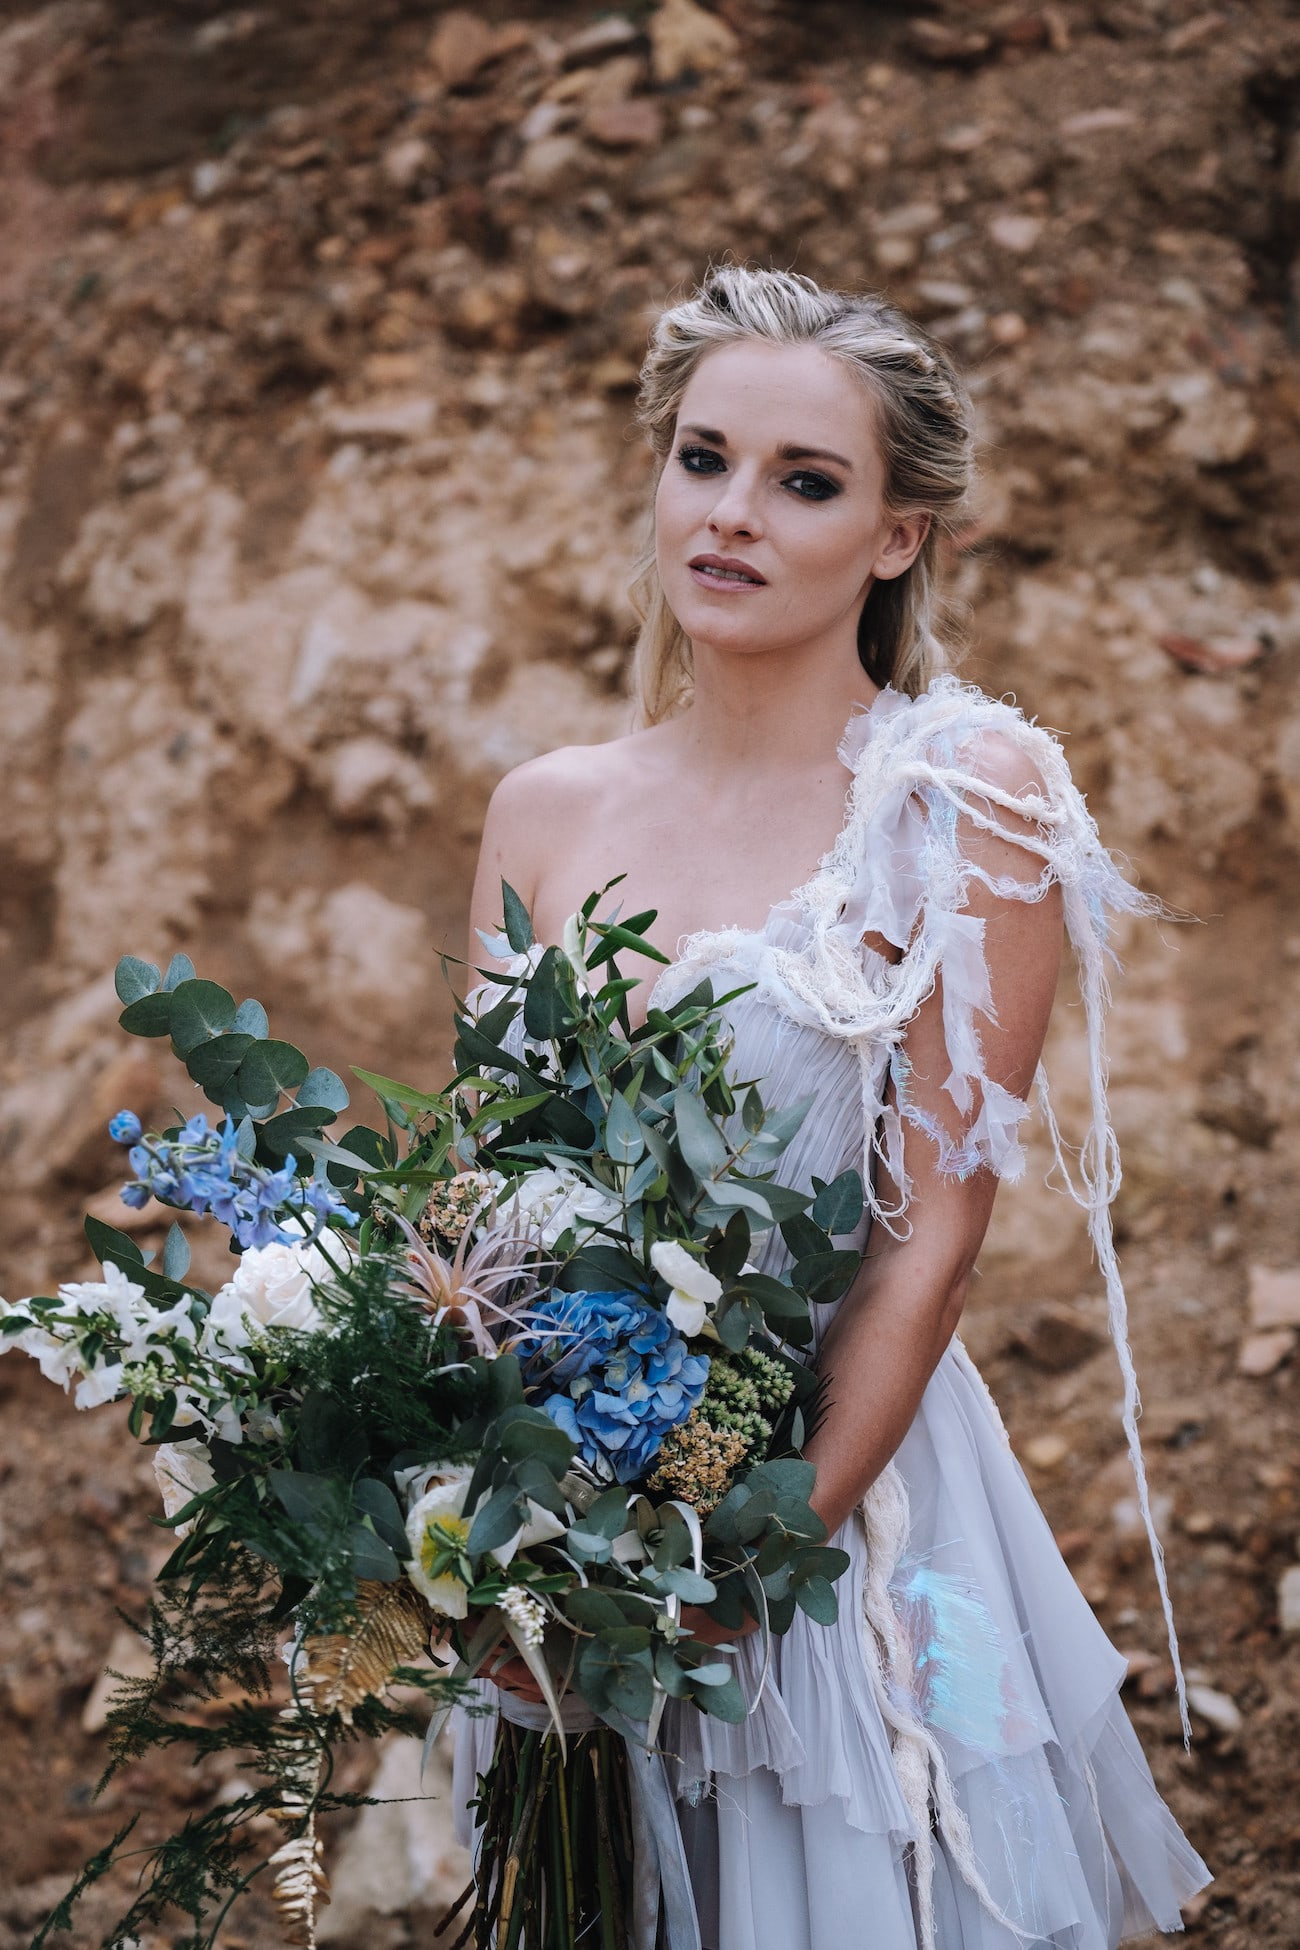 Oversize Statement Bouquet | Atmospheric Wedding Inspiration | Credit: The Shank Tank